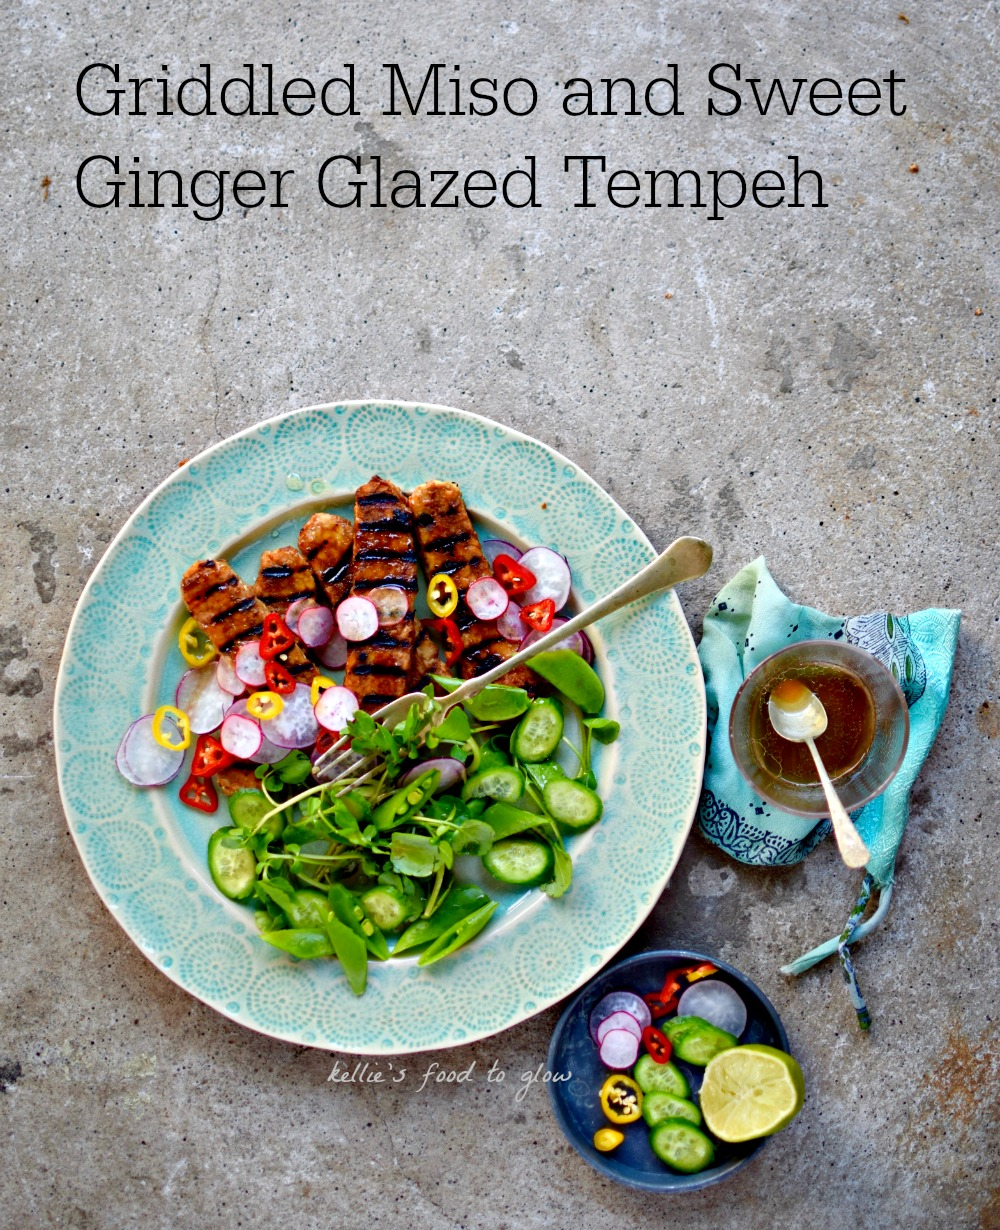 Tempeh - fermented whole soy cakes - are extremely nutritious but not well-known in the West. This easy recipe makes this healthy, vegan protein much more accessible with a delicious miso and ginger glaze. Griddle or pan-fry and enjoy with the spicy lime-dressed salad.